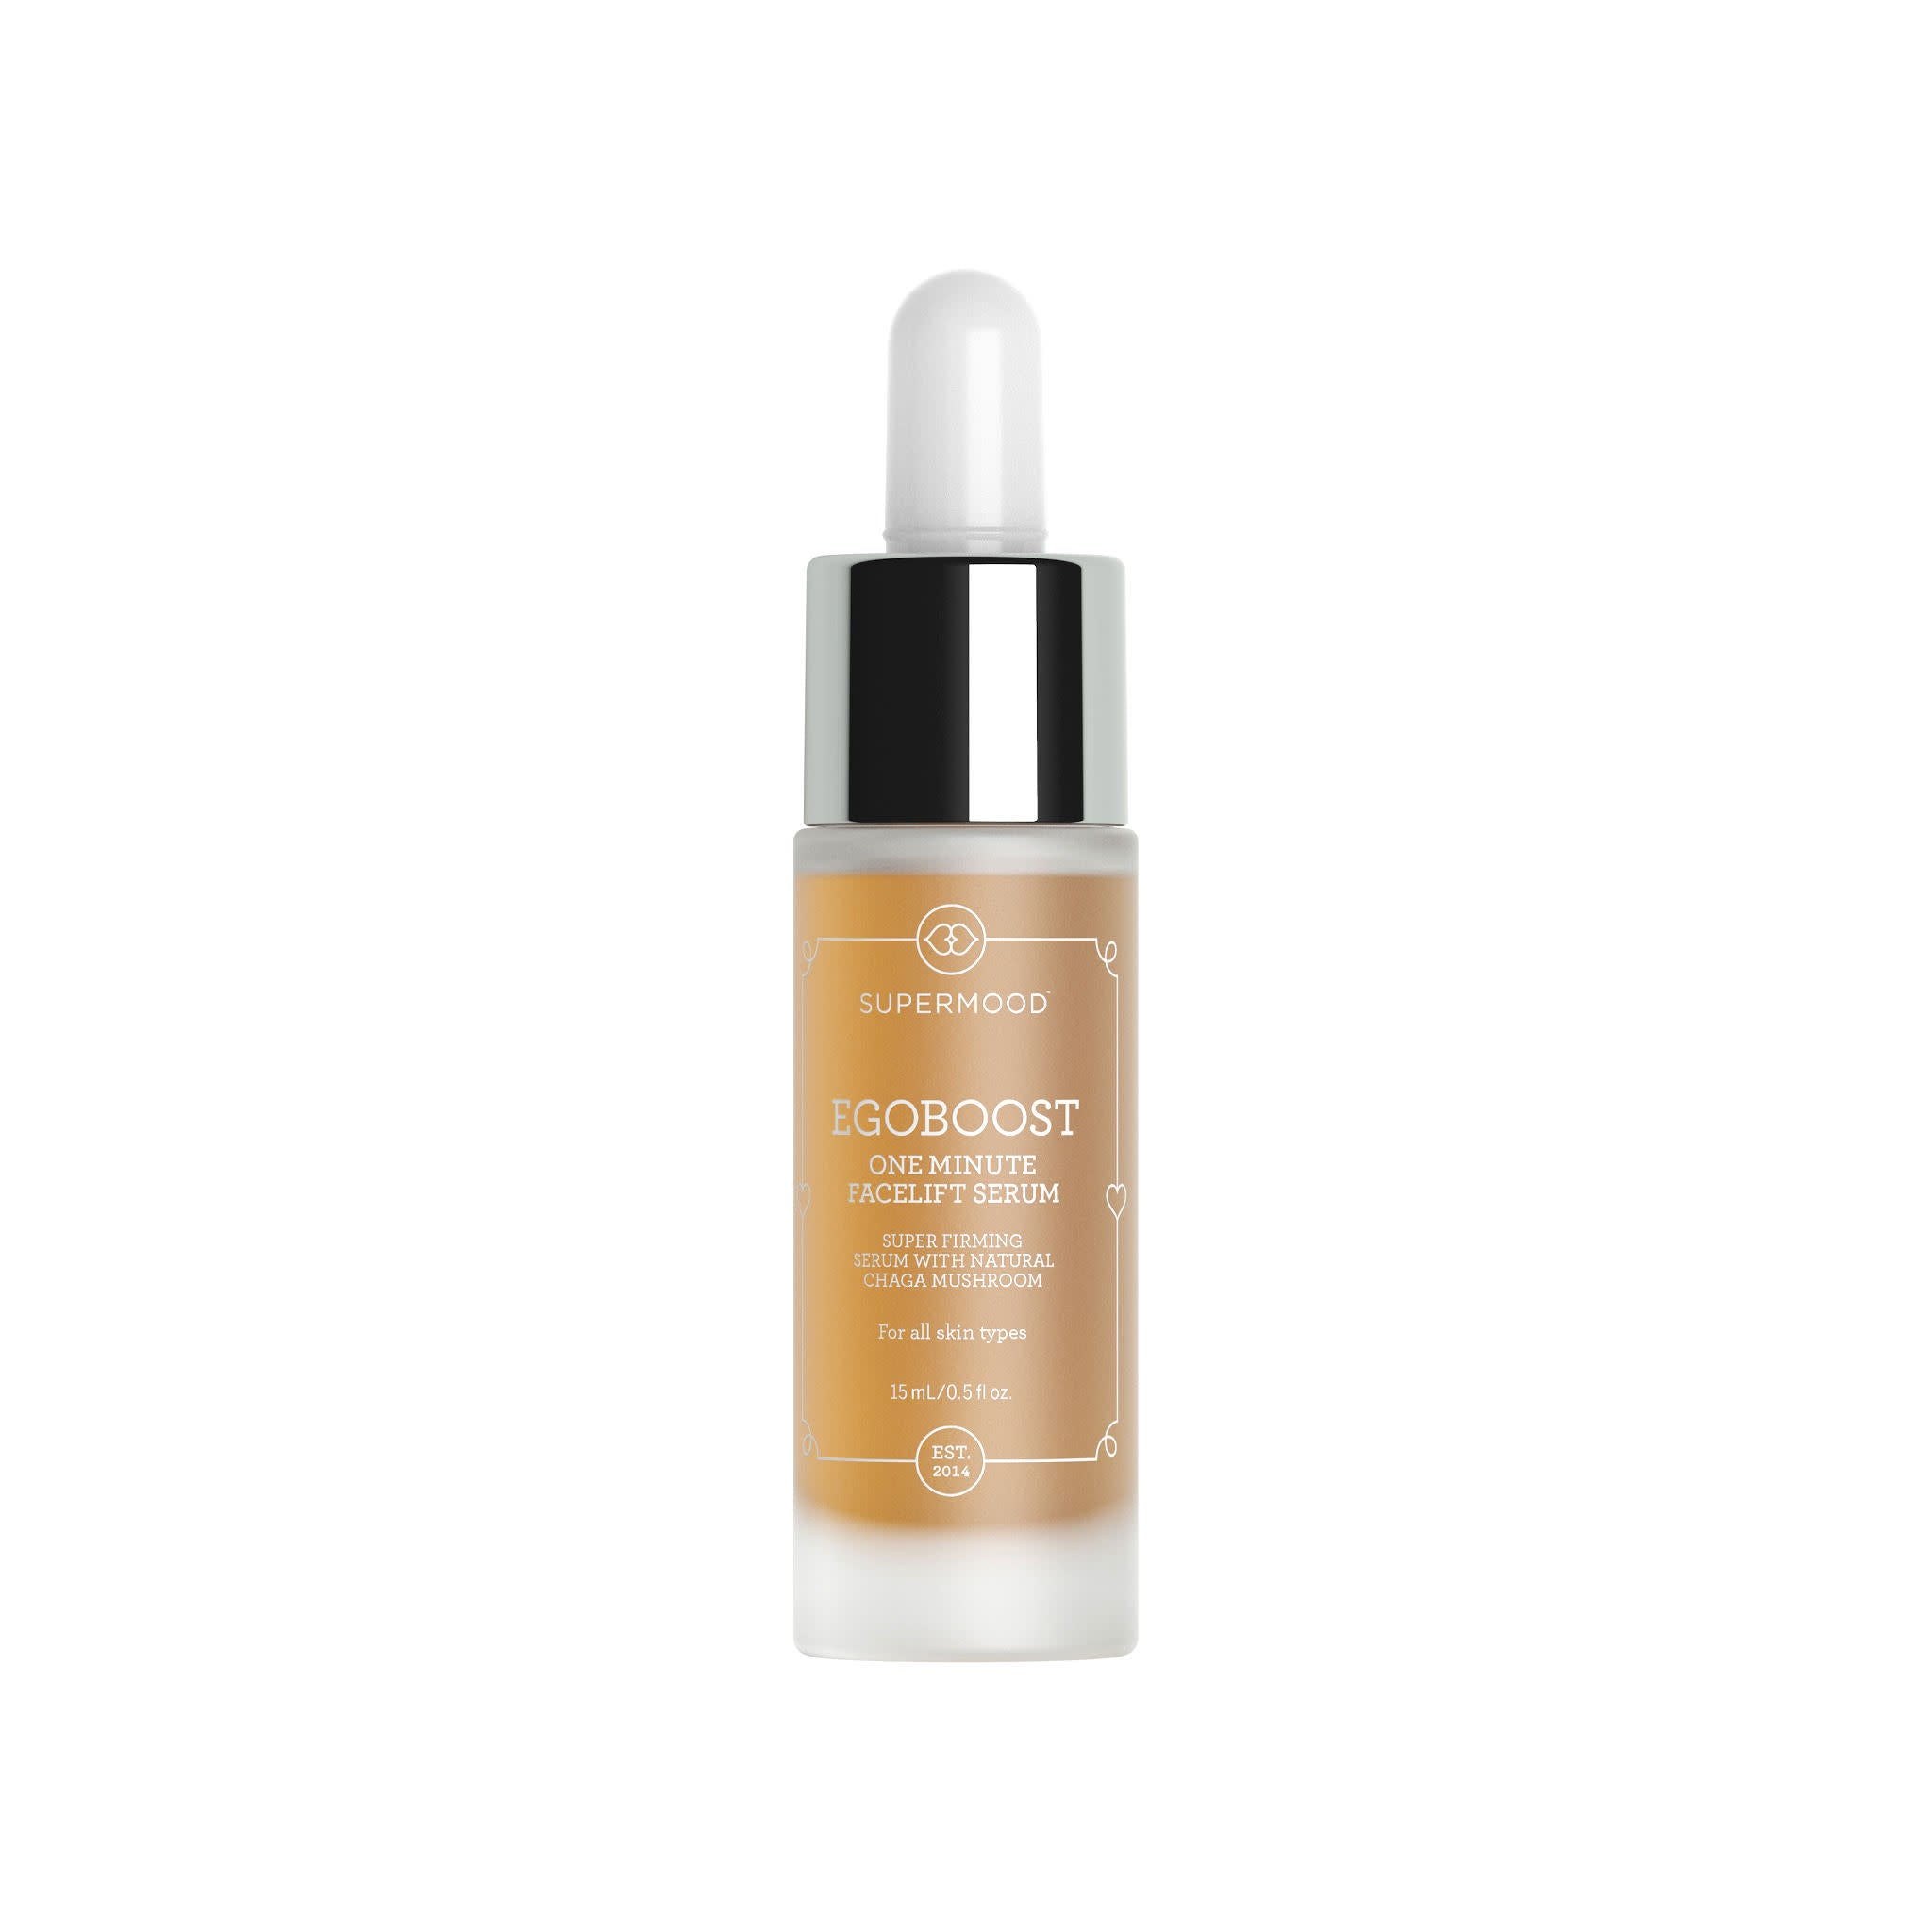 Egoboost One Minute Facelift Serum